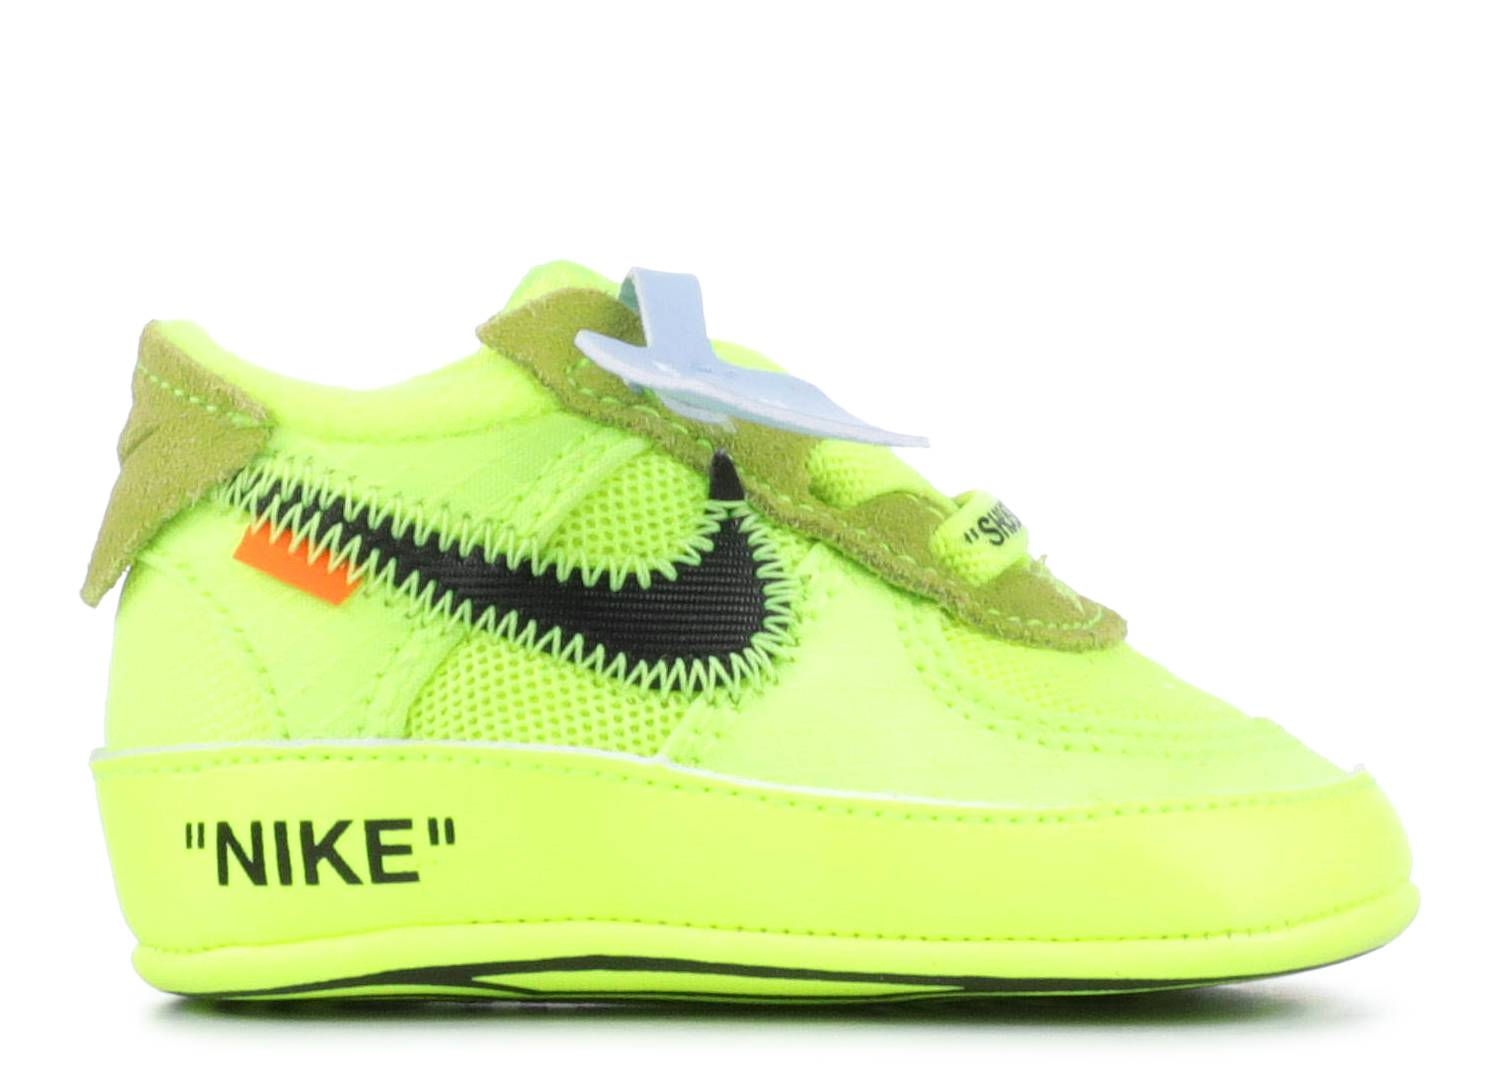 quality design 9424a 4a70d The 10: Nike force 1 (cb)